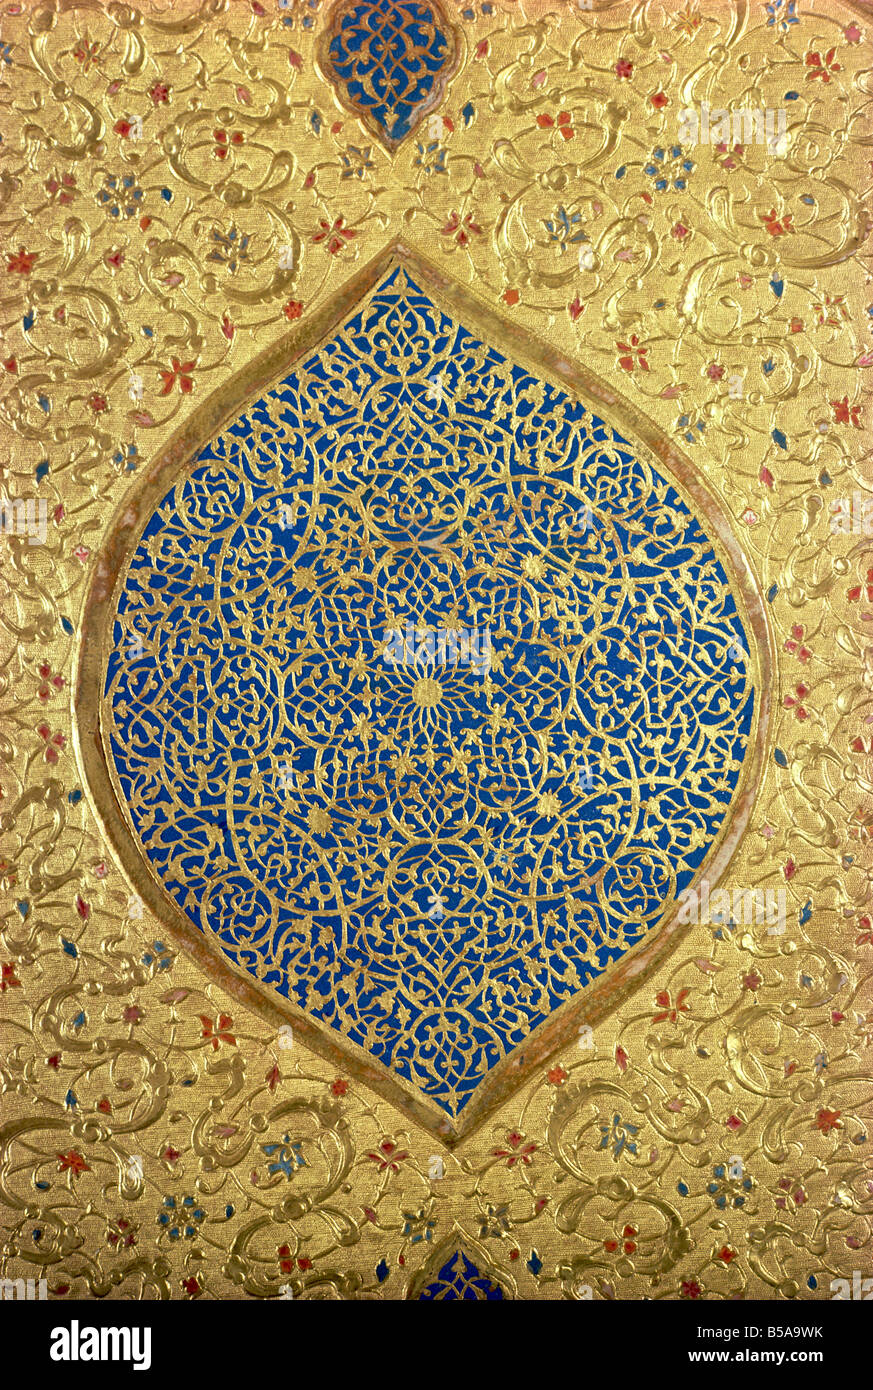 Cover of a Koran Mashad Iran Middle East - Stock Image